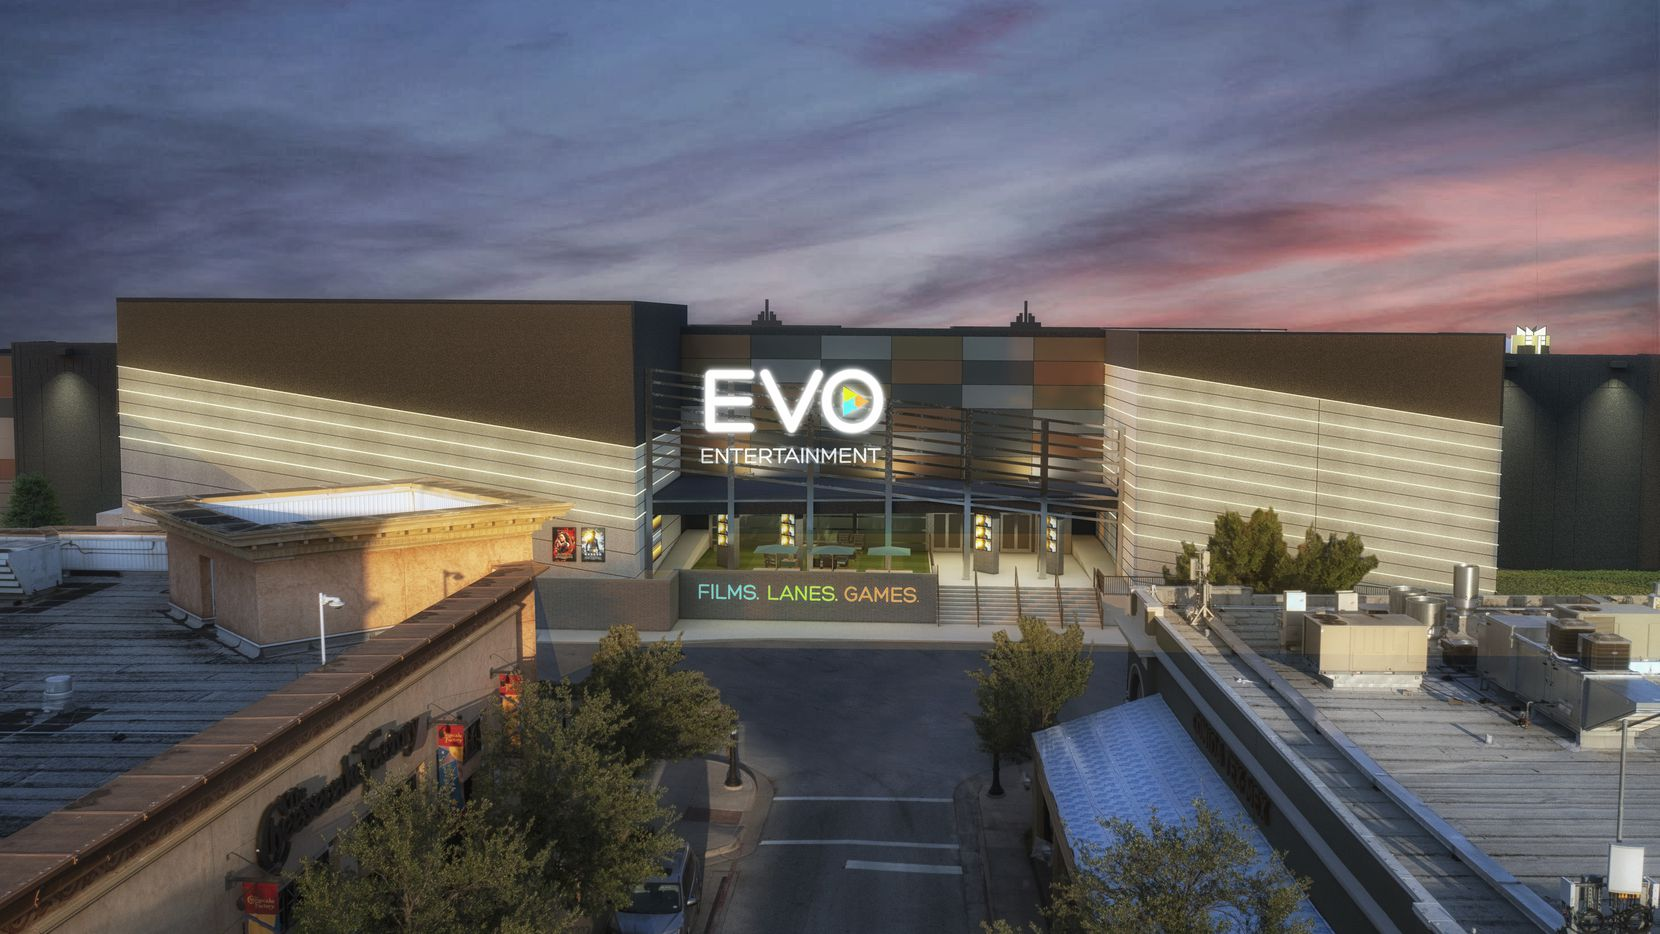 Austin-based EVO Entertainment is expanding to North Texas, with a first location in Southlake shown in this rendering.